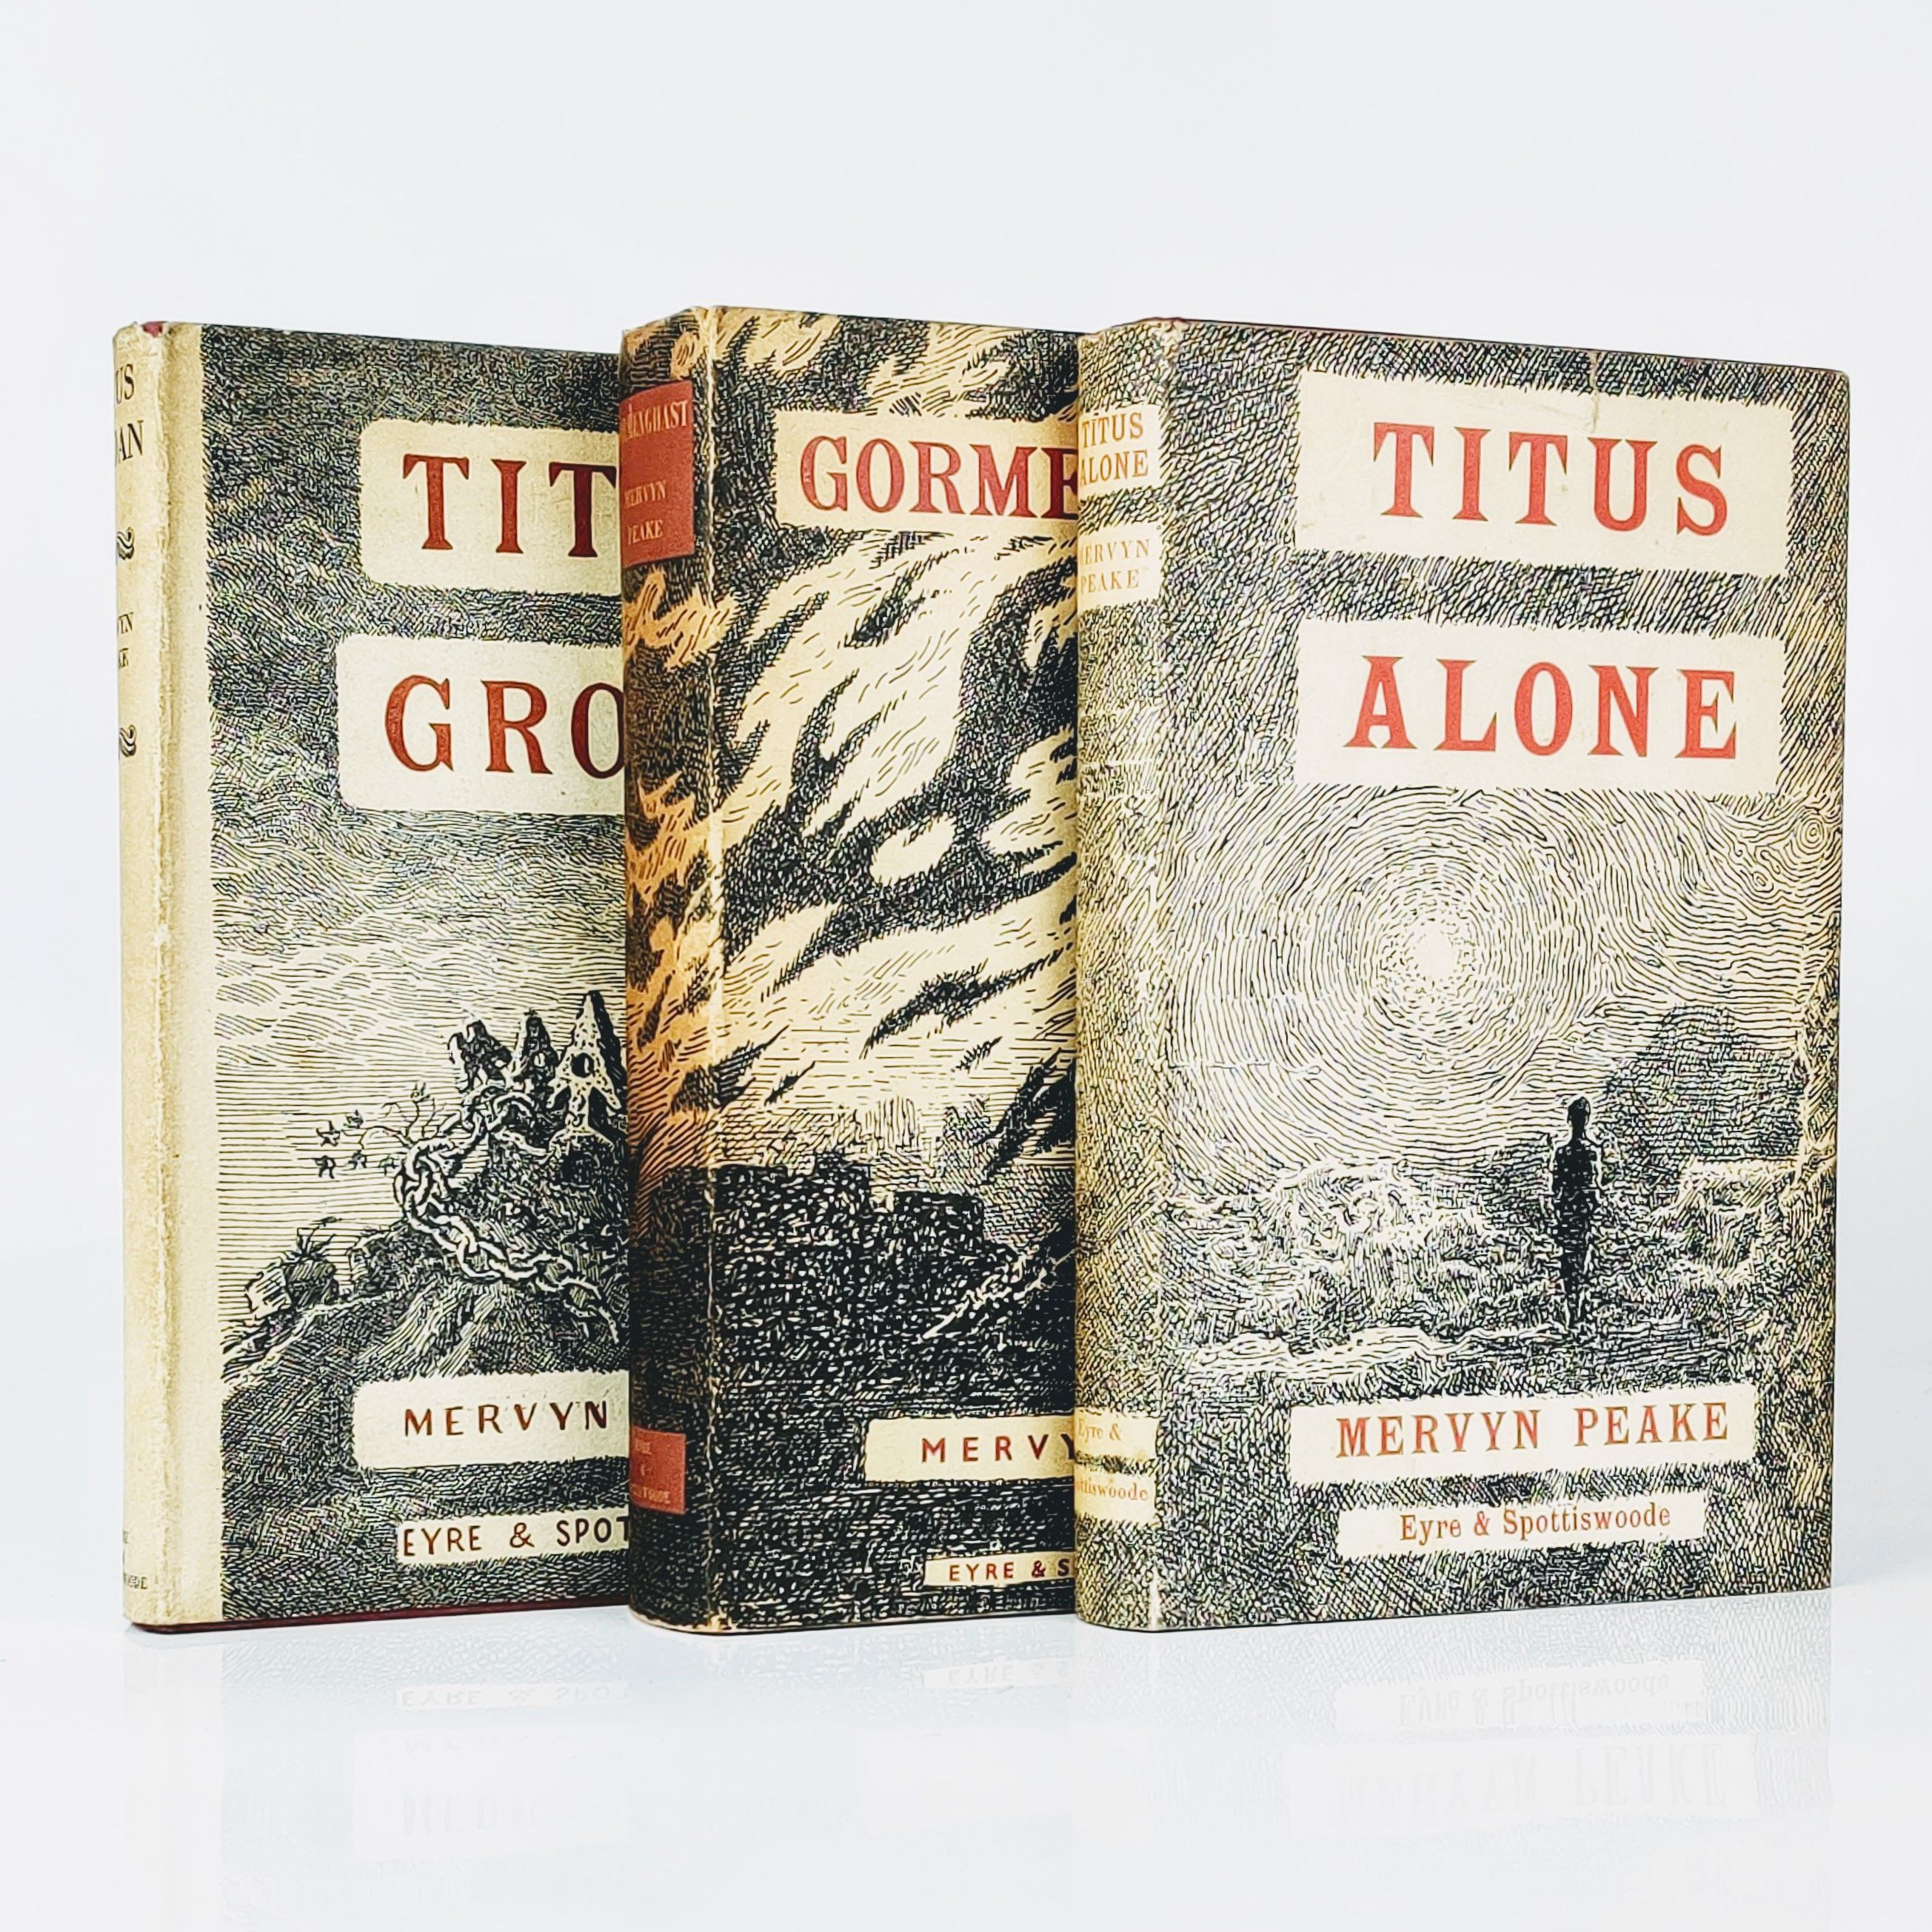 The Gormenghast Trilogy: Titus Groan, Gormenghast and Titus Alone (photo 1)